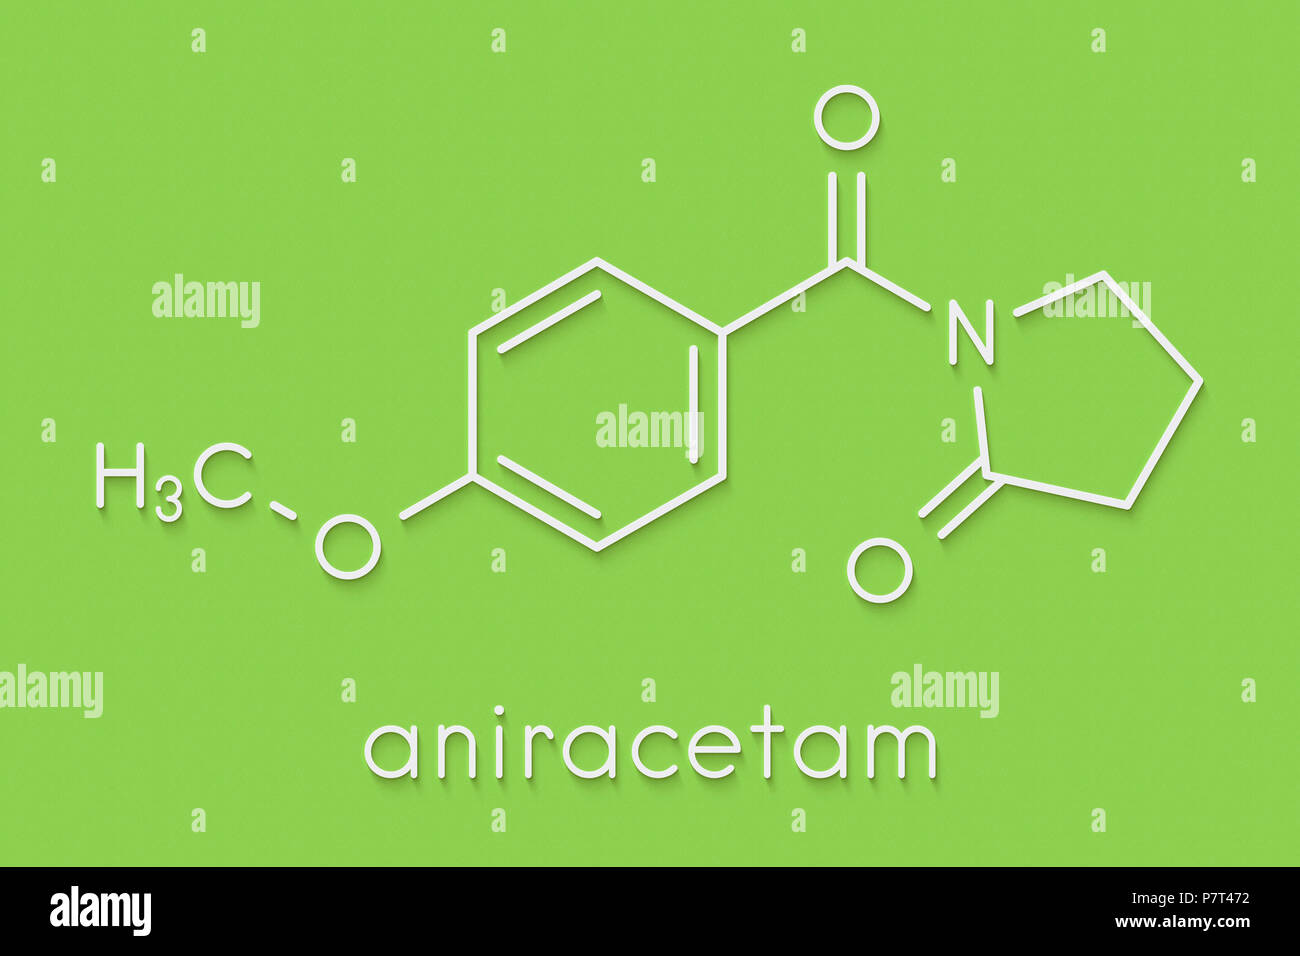 Nootropic Stock Photos & Nootropic Stock Images - Alamy